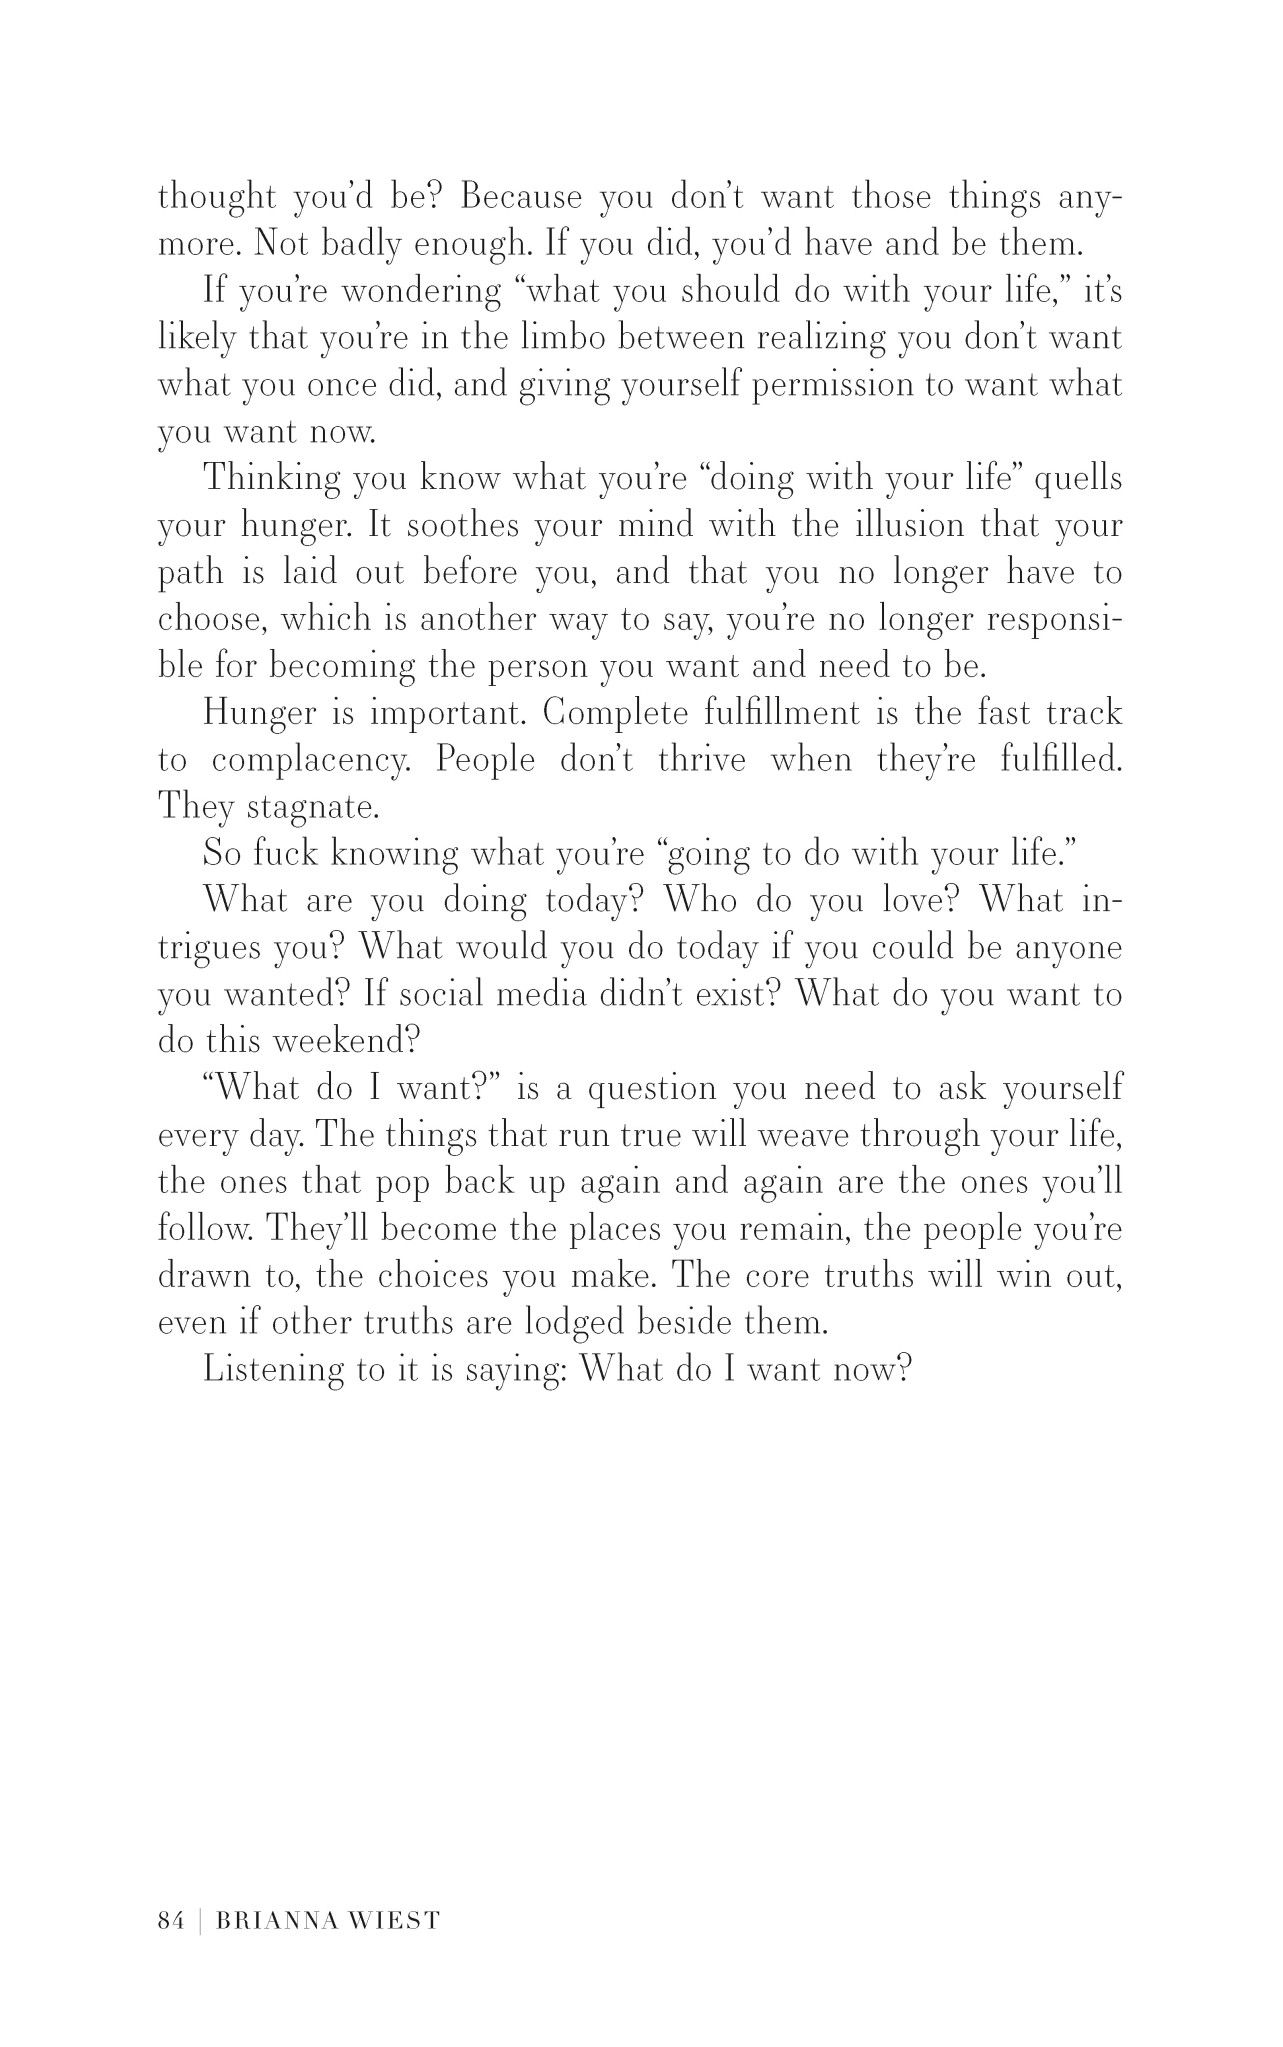 Cutting/Changing Quotations | Essay Writing for LPS